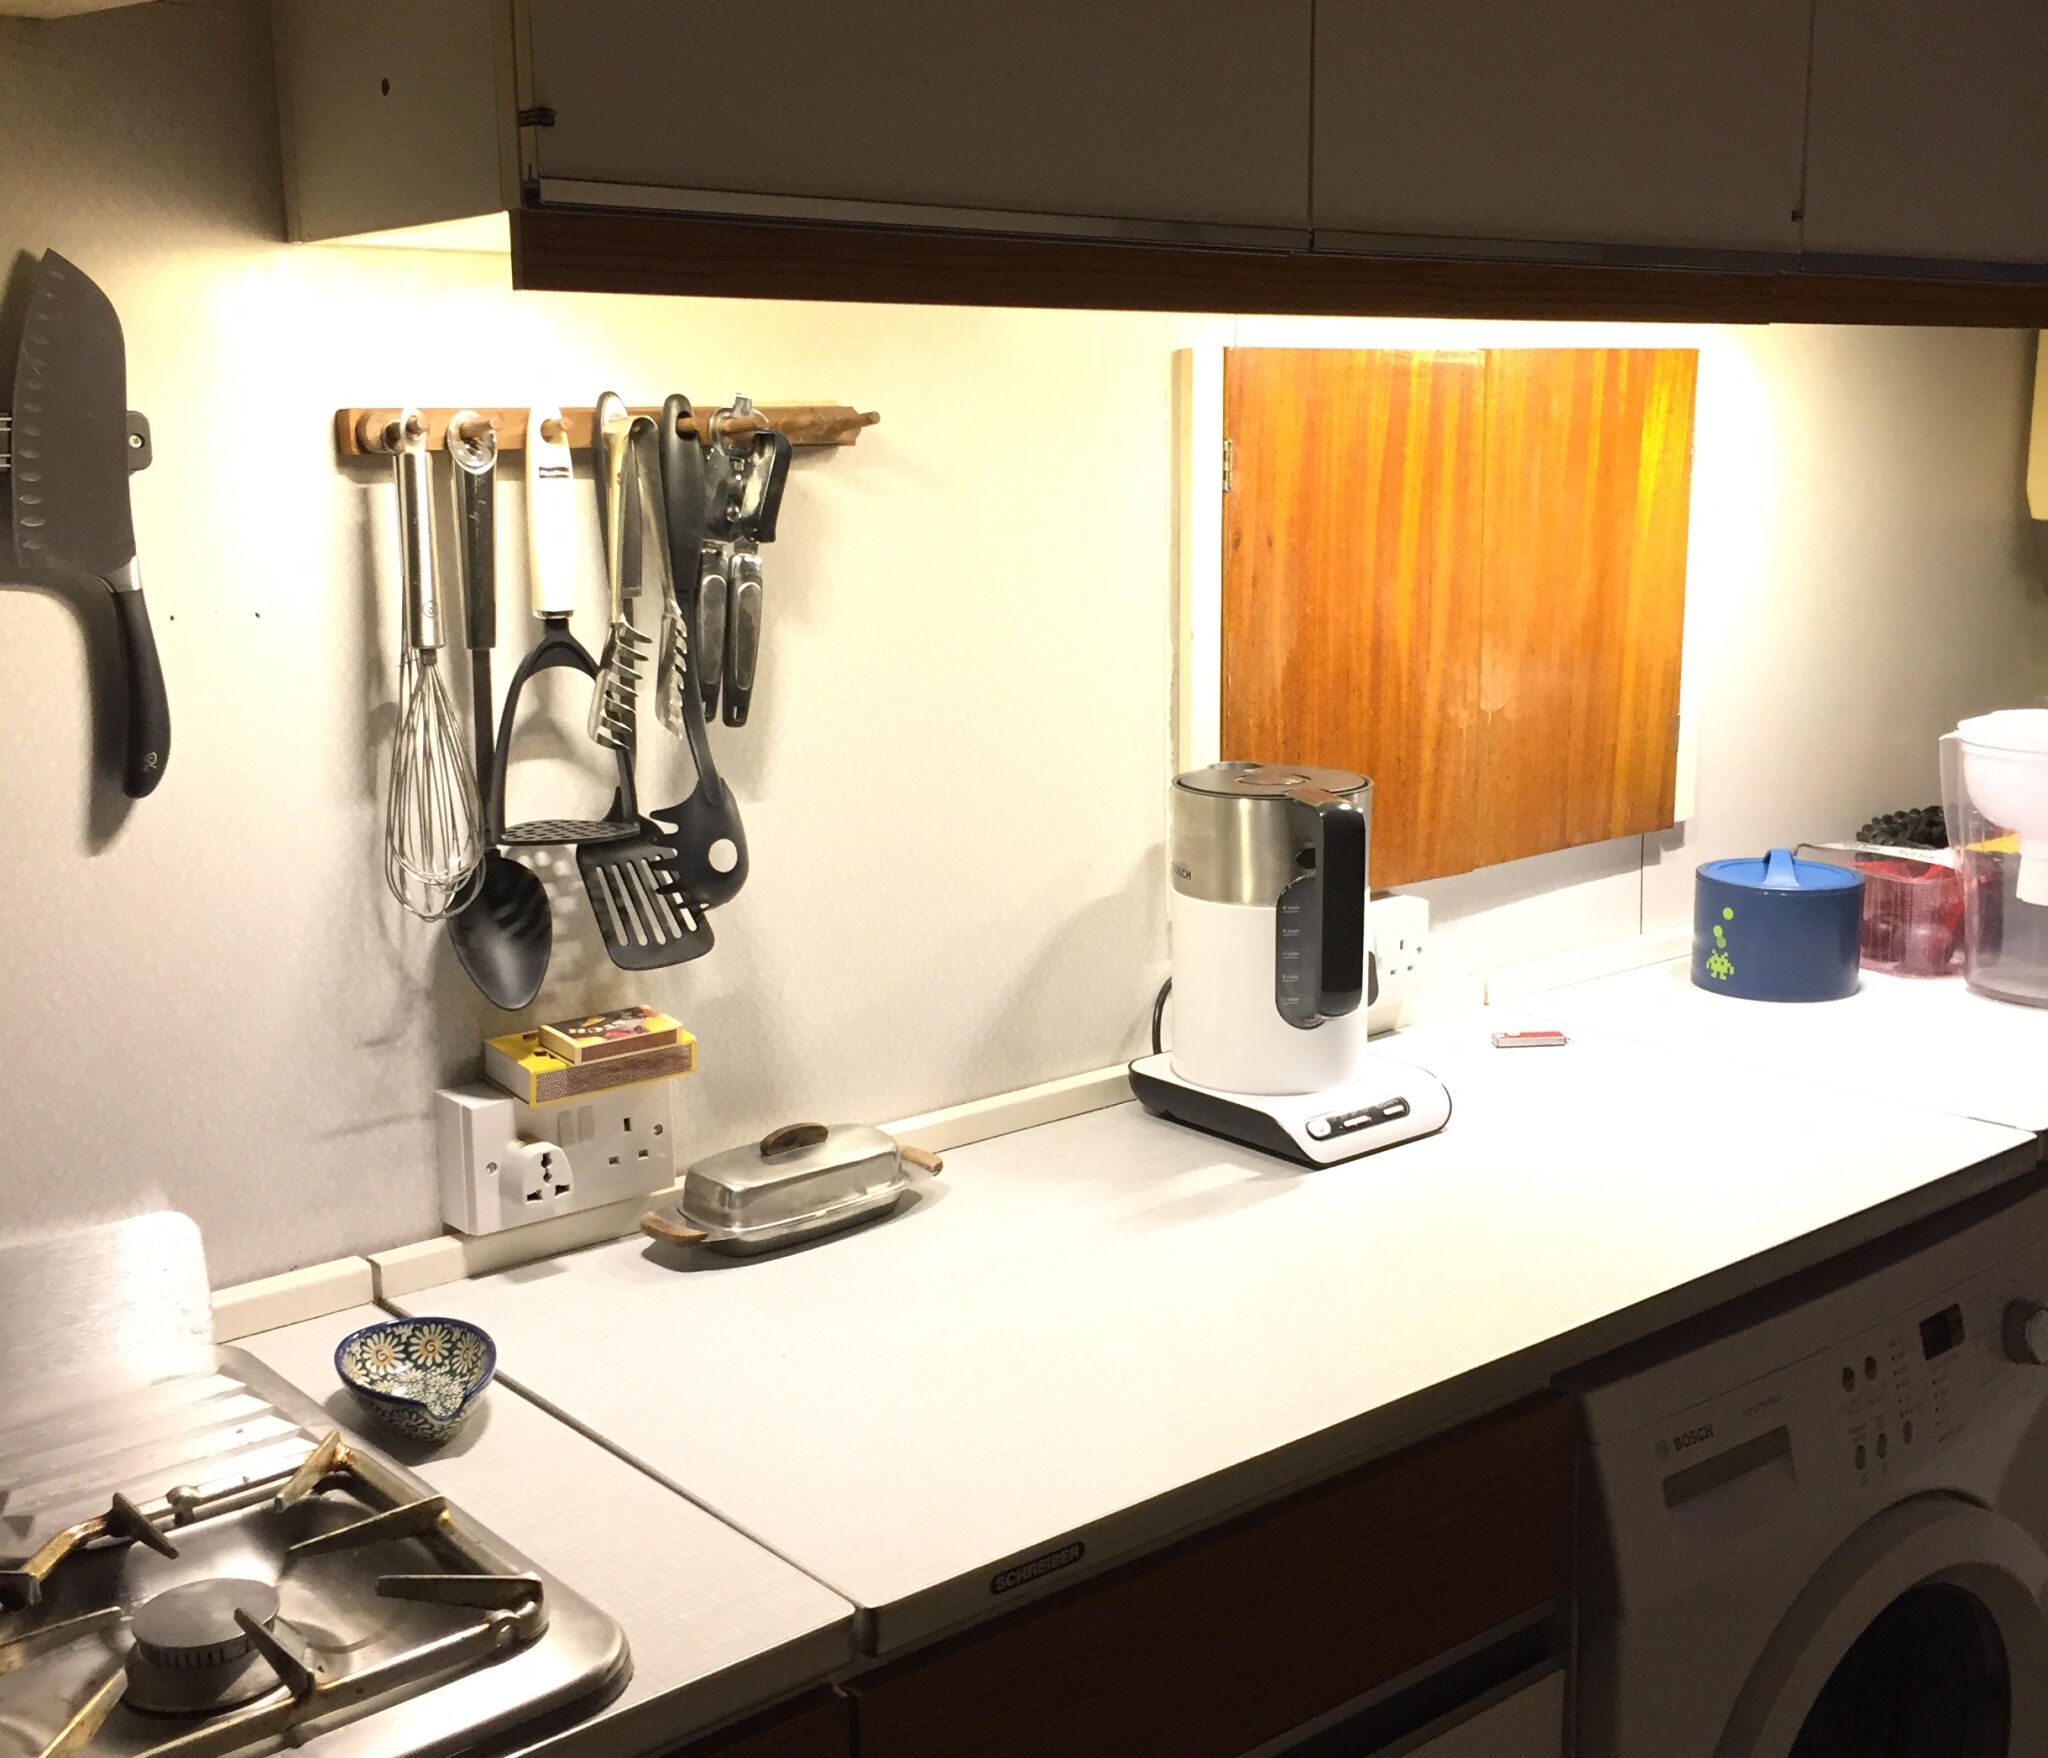 The 1970s kitchen countertop is now well-lit...